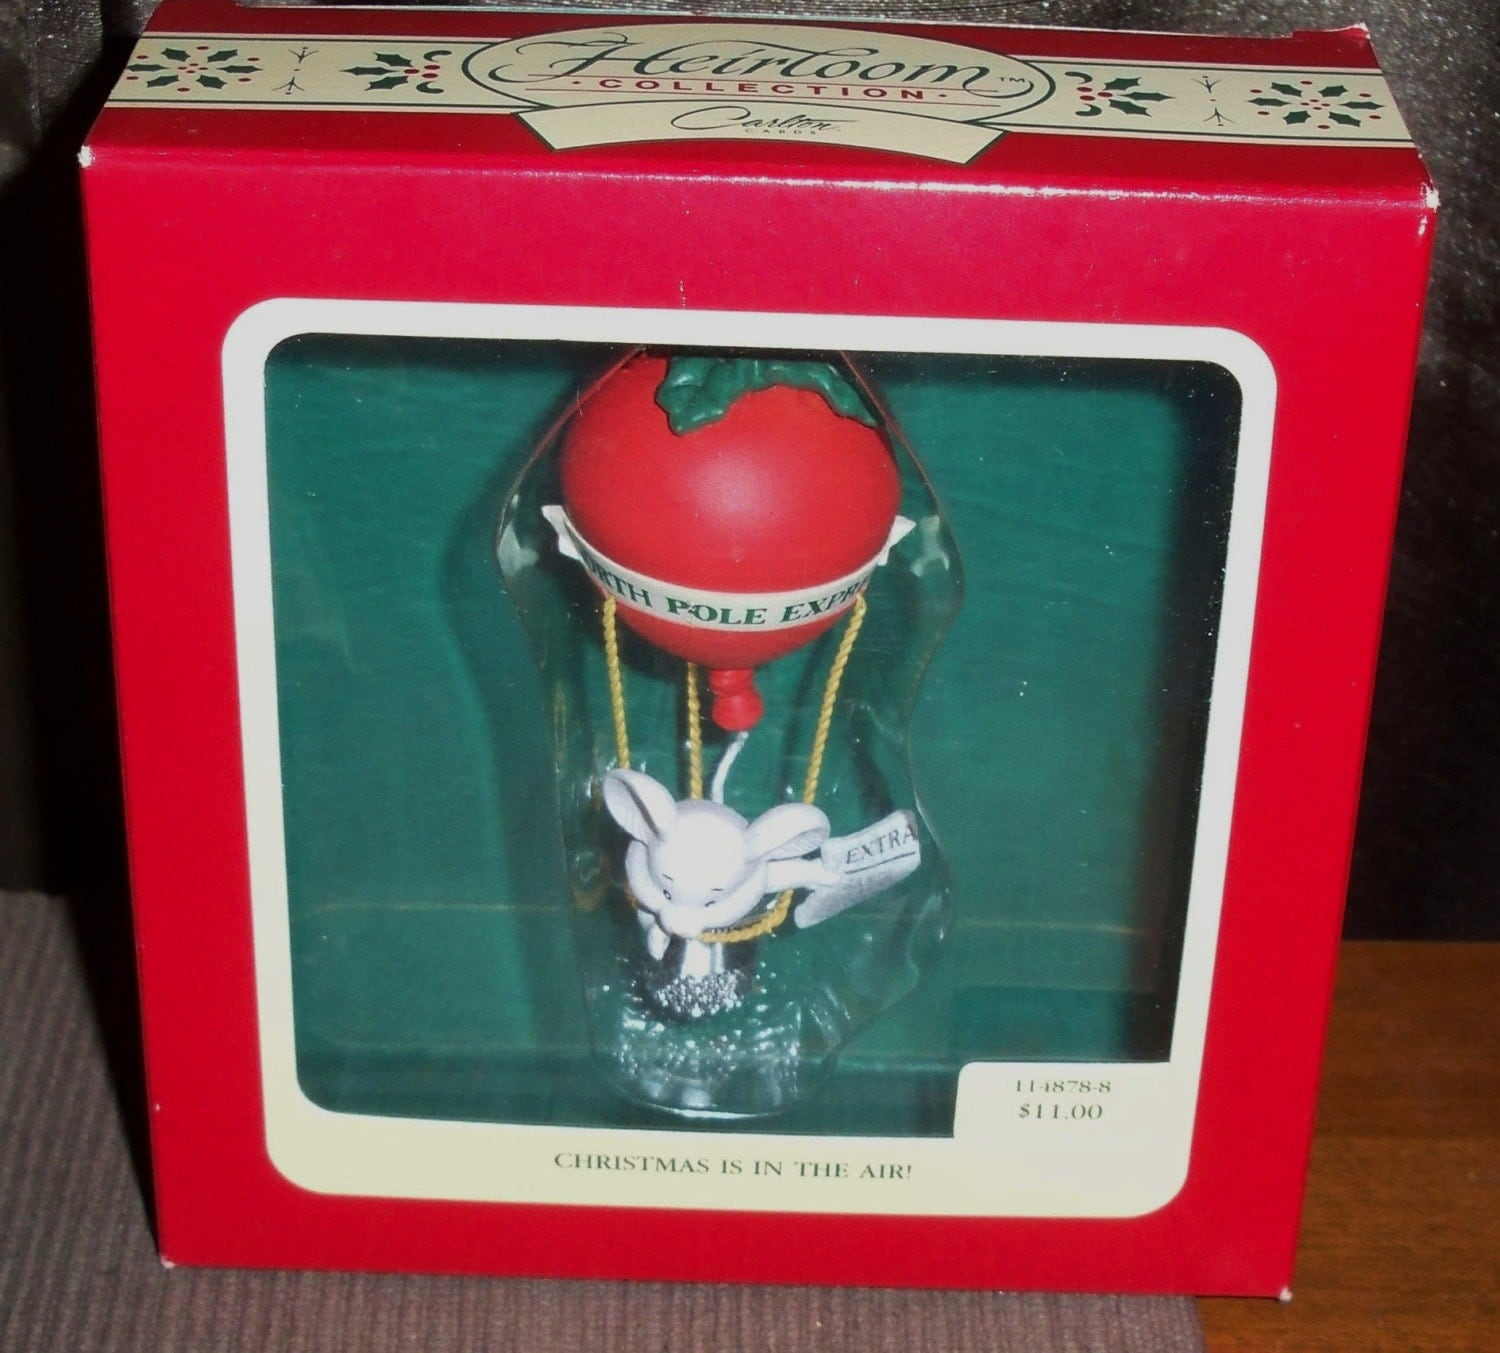 1991 Carlton Cards Christmas In The Air Ornament in Box